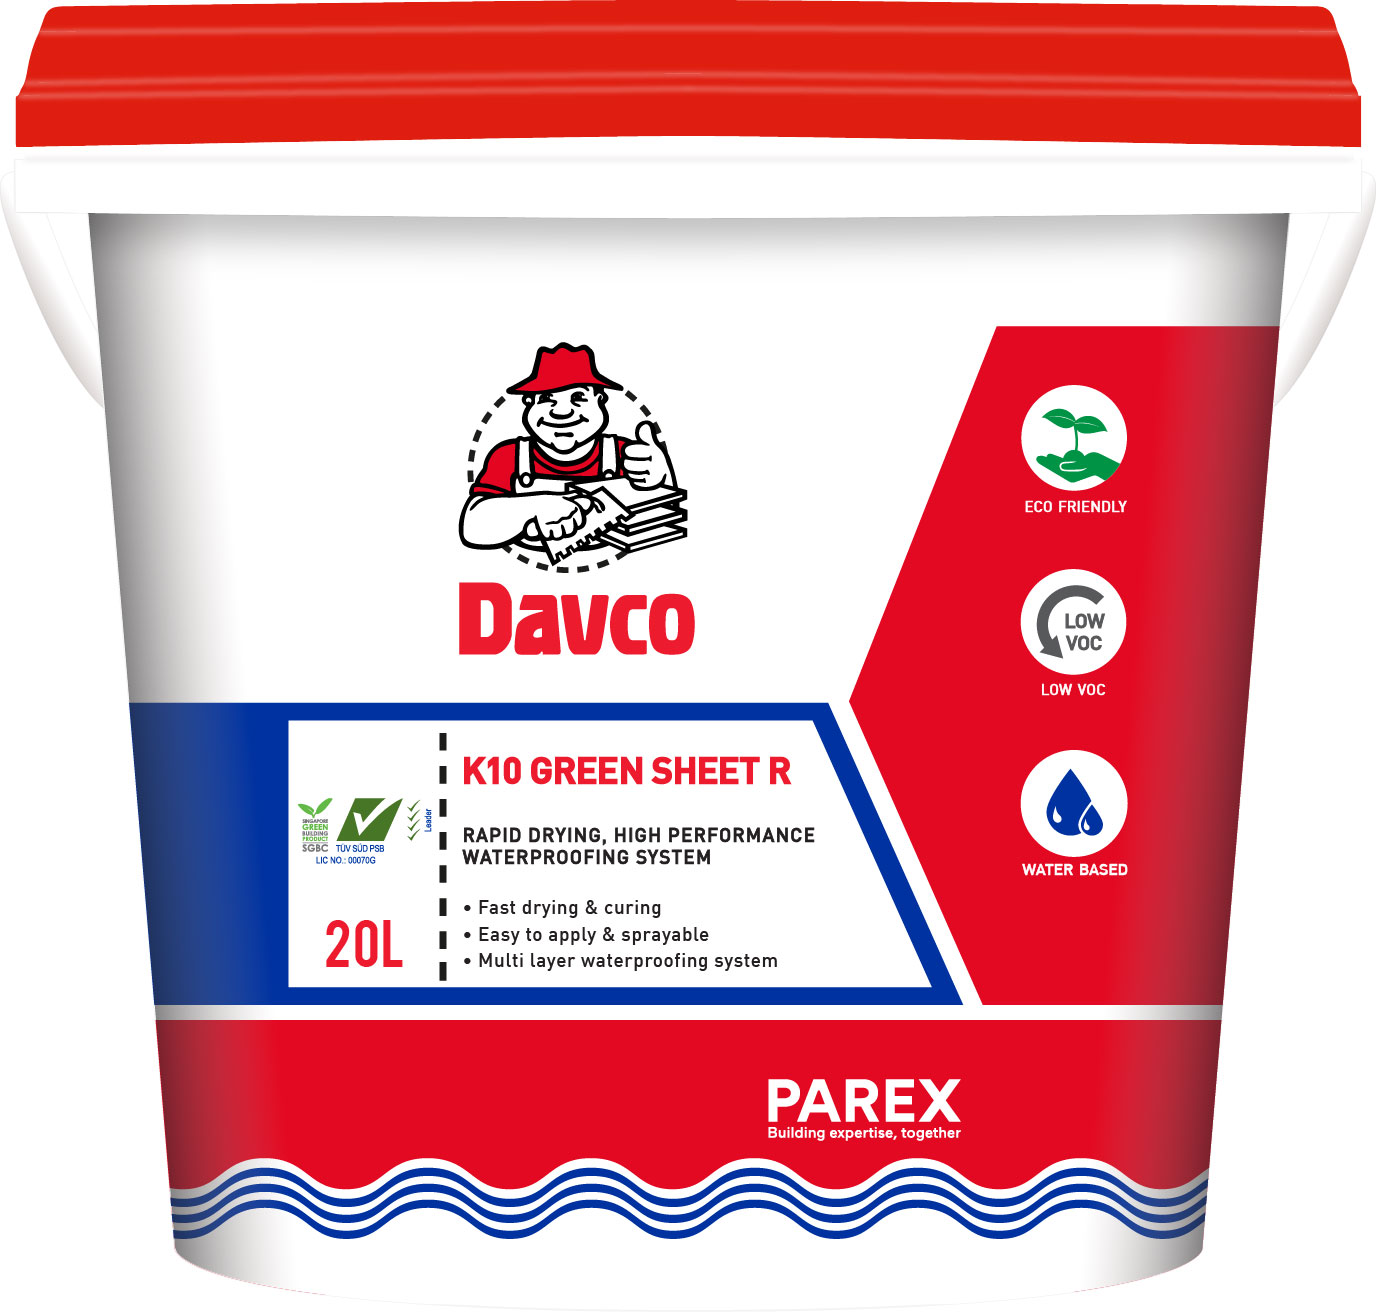 Davco K10 Green Sheet R